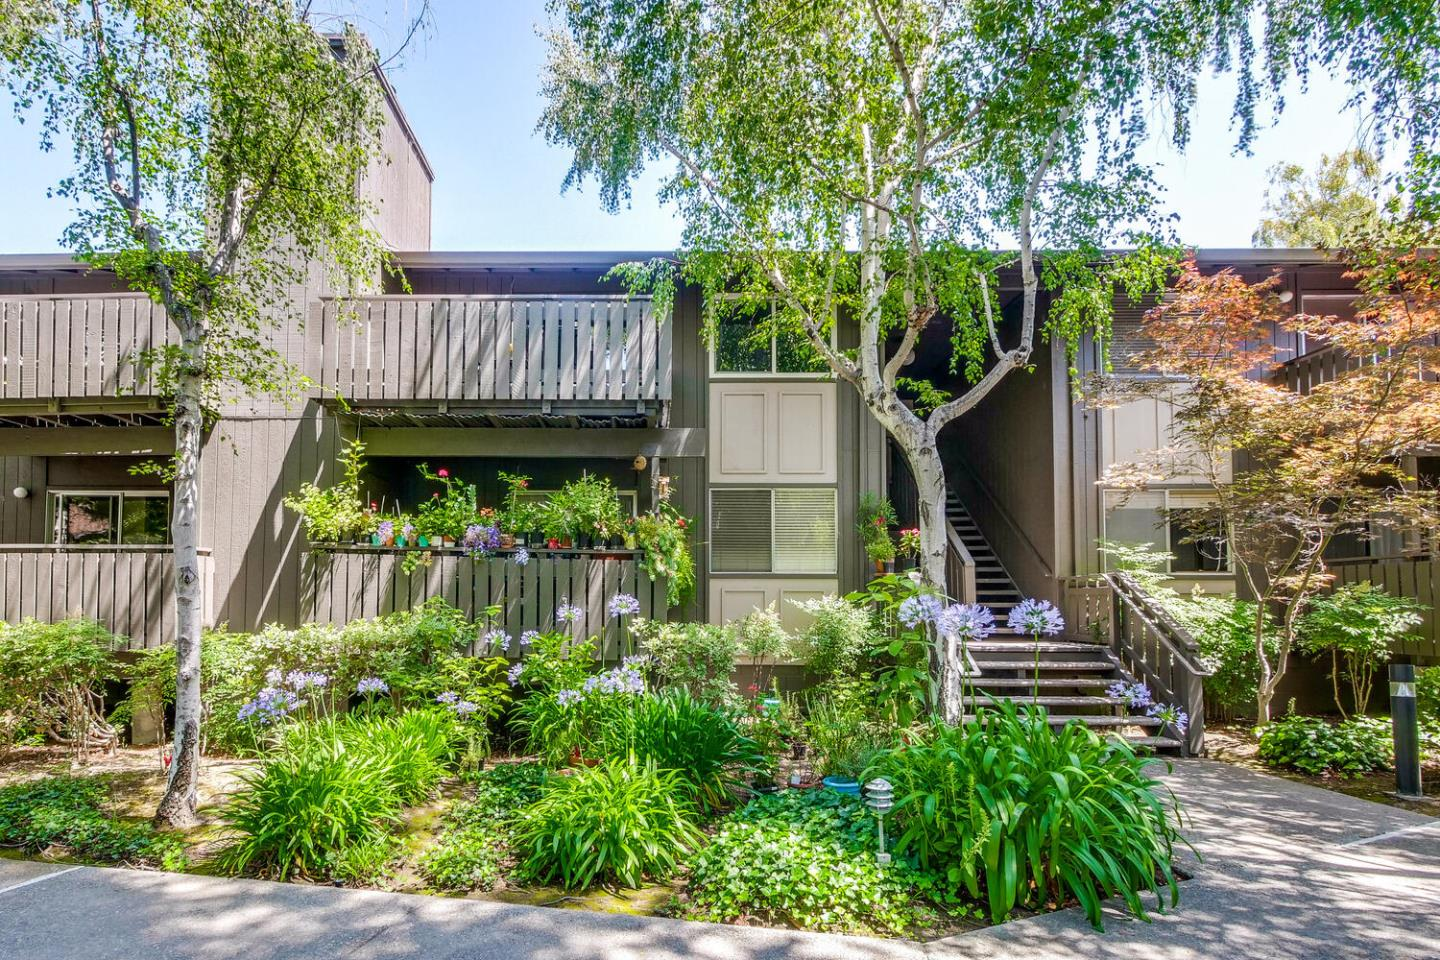 Tastefully remodeled condo in the Brookview Homes community.  Just minutes away from Downtown, CalTrain, Shoppings, Parks, as well as the German and Yew Chung International School.  Across the Street is the entrance to Stevens Creek Trail that leads to Downtown, Google campuses, and San Francisco Bay Trail.  This upstairs unit features dual pane windows, brand new carpet, energy-efficient LED recessed lights, remodeled kitchen w/ brand new stainless steel appliances, additional storage, and more.  Just minutes away from Downtown, CalTrain, Shoppings, Hwy 101 & 85, as well as the German and Yew Chung International School.  Across the Street is the entrance to Stevens Creek Trail that leads to Downtown, Google campuses, and San Francisco Bay Trail.  With lush landscaping and matured trees all around, this condo has it all.